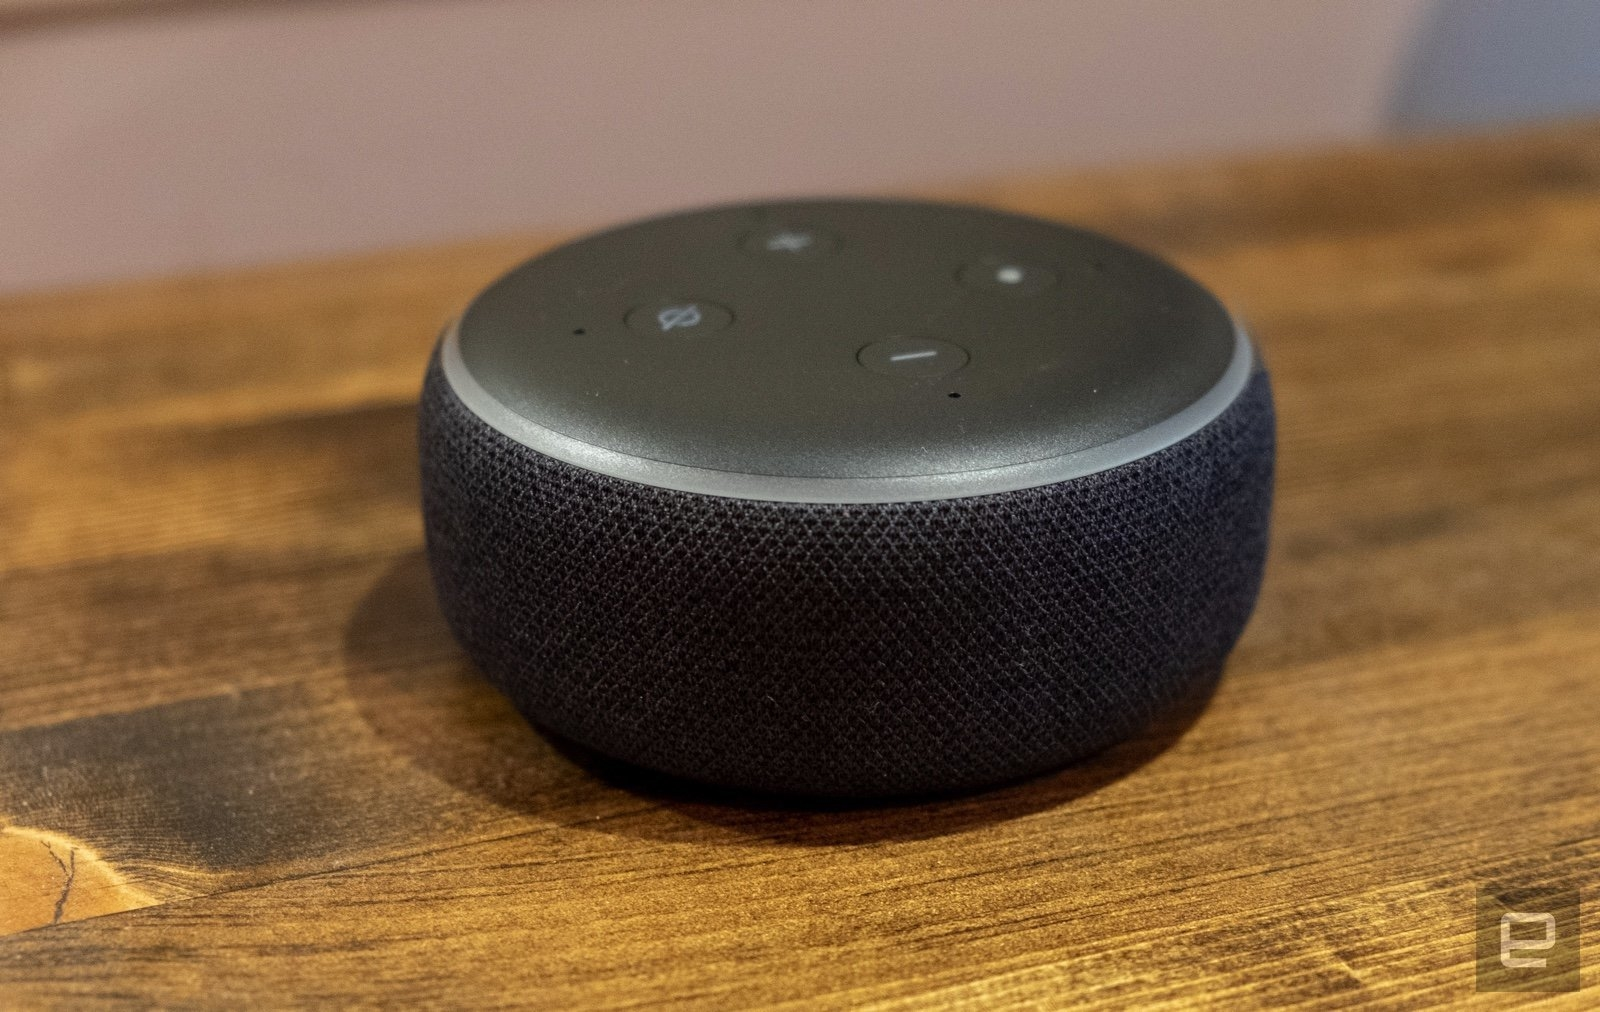 UK offers government info through Alexa and Google Assistant | DeviceDaily.com